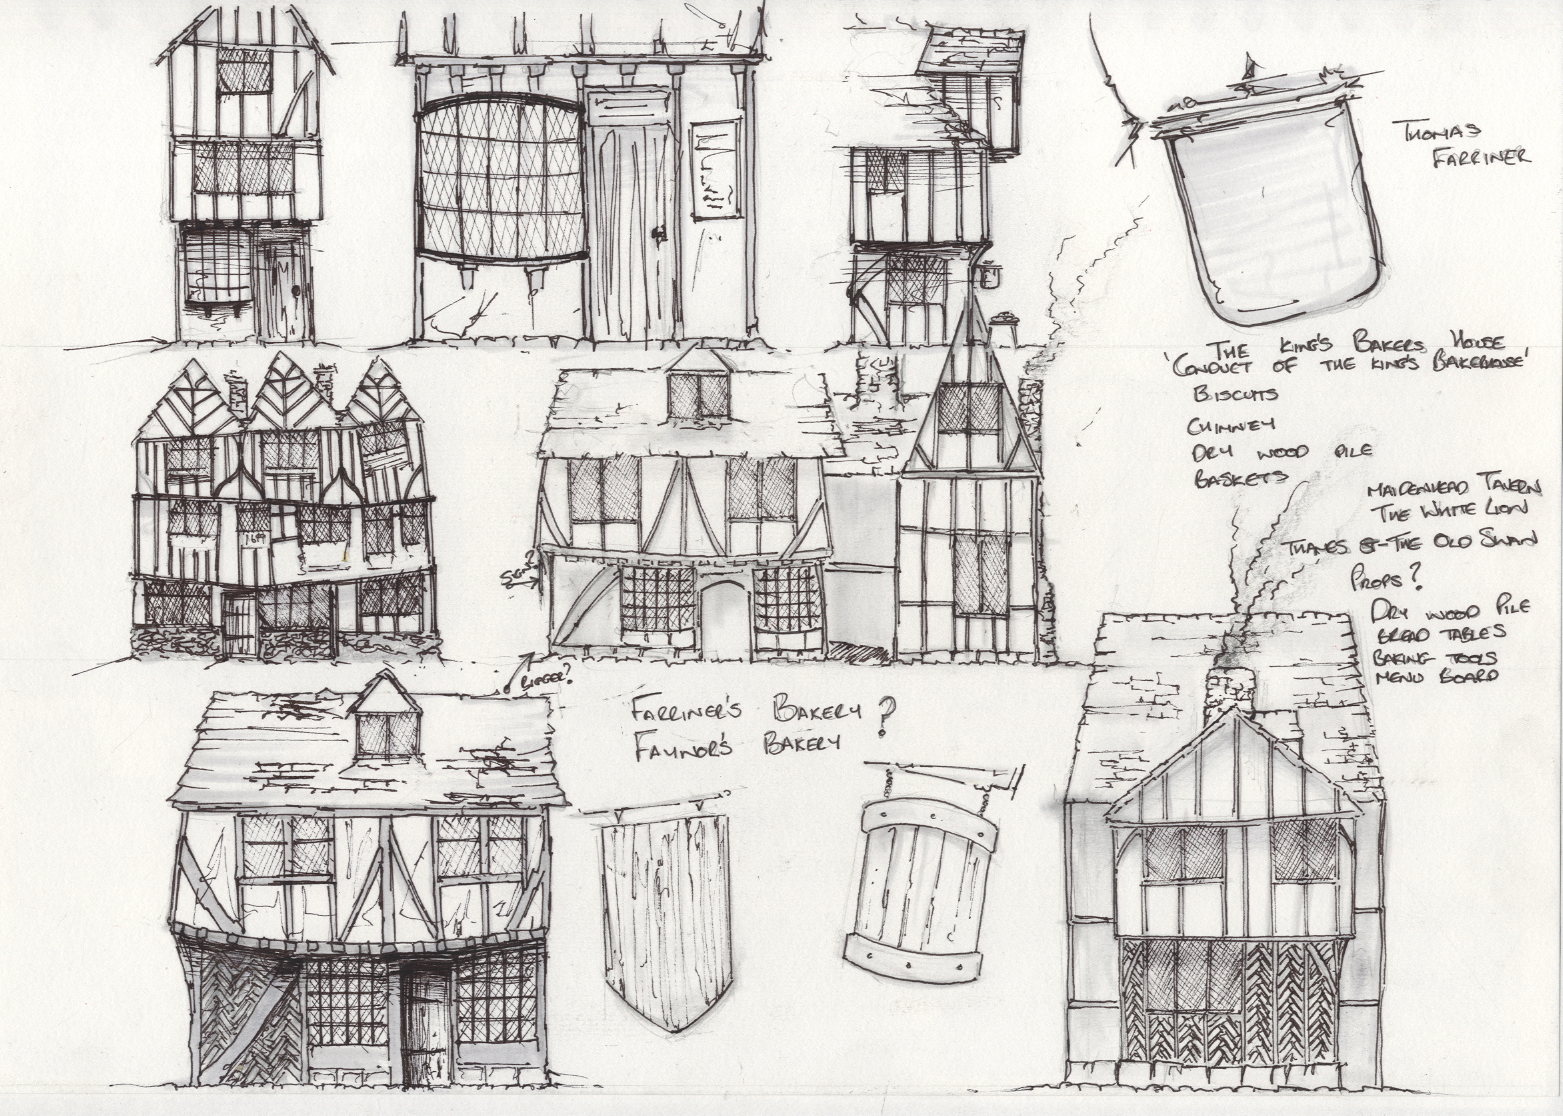 Pudding Lane - Bakery Sketches